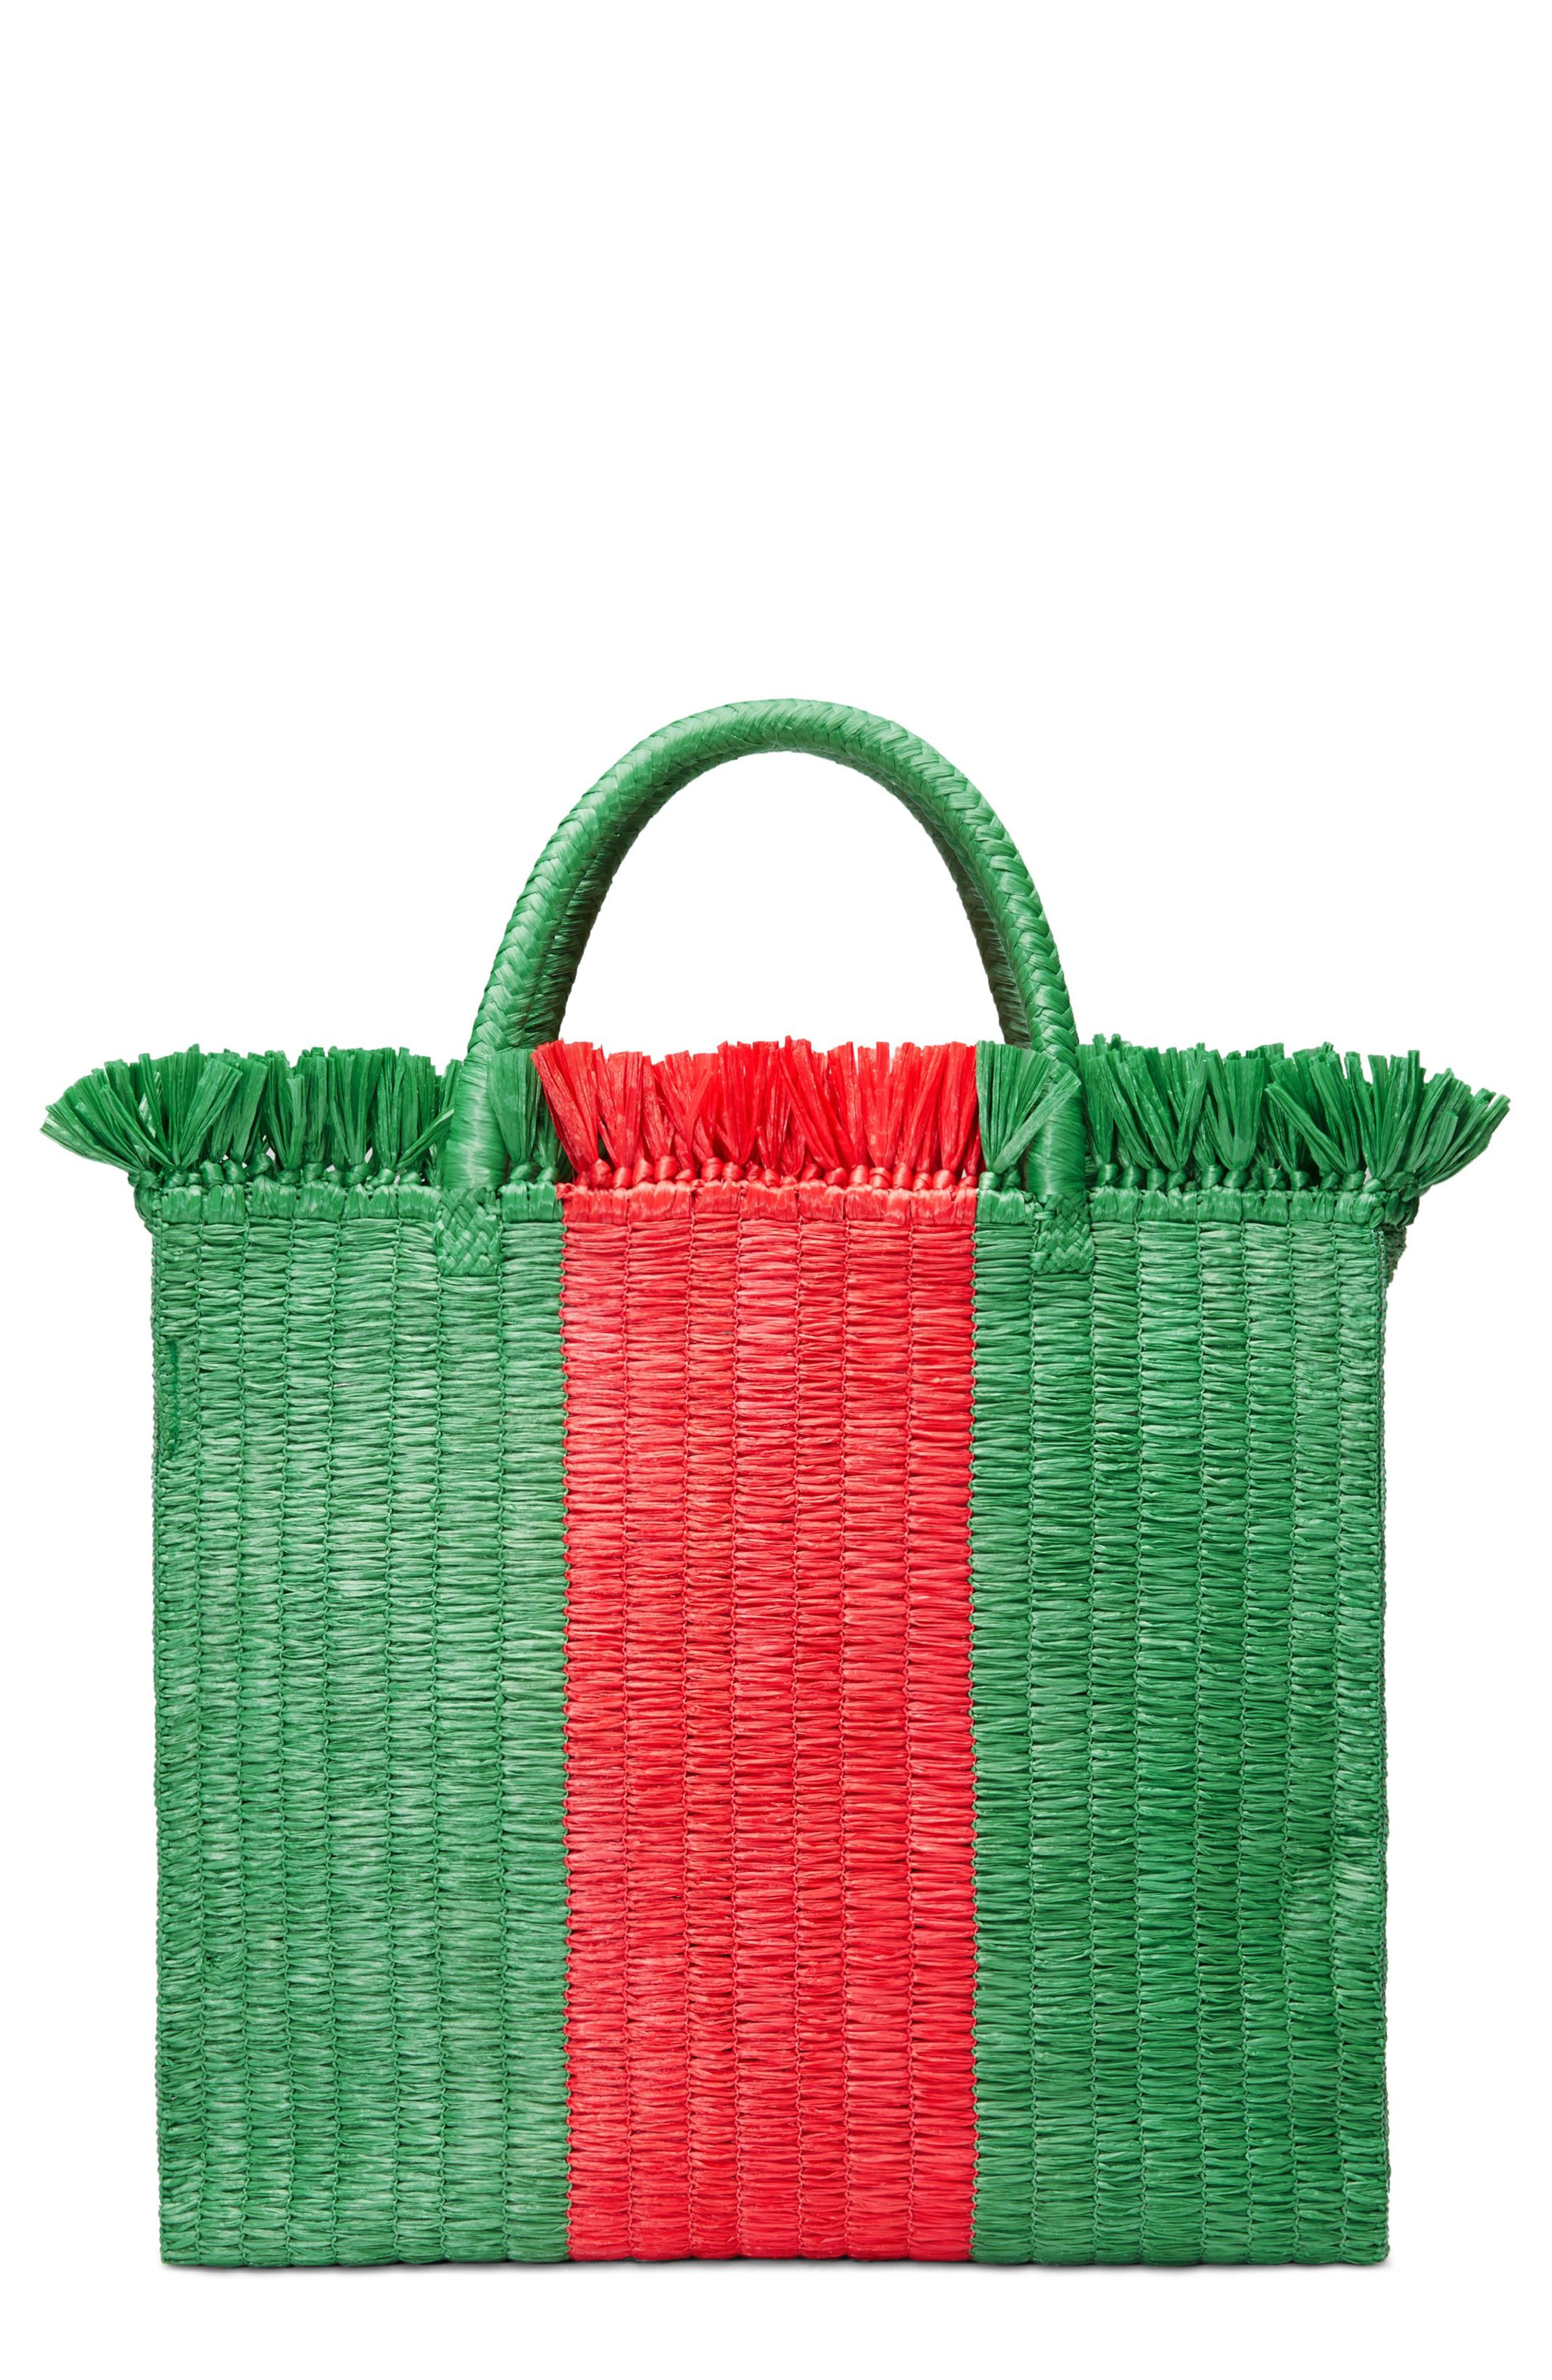 GUCCI,                             Web Woven Straw Tote,                             Main thumbnail 1, color,                             VERDE/ ROSSO/ VERDE